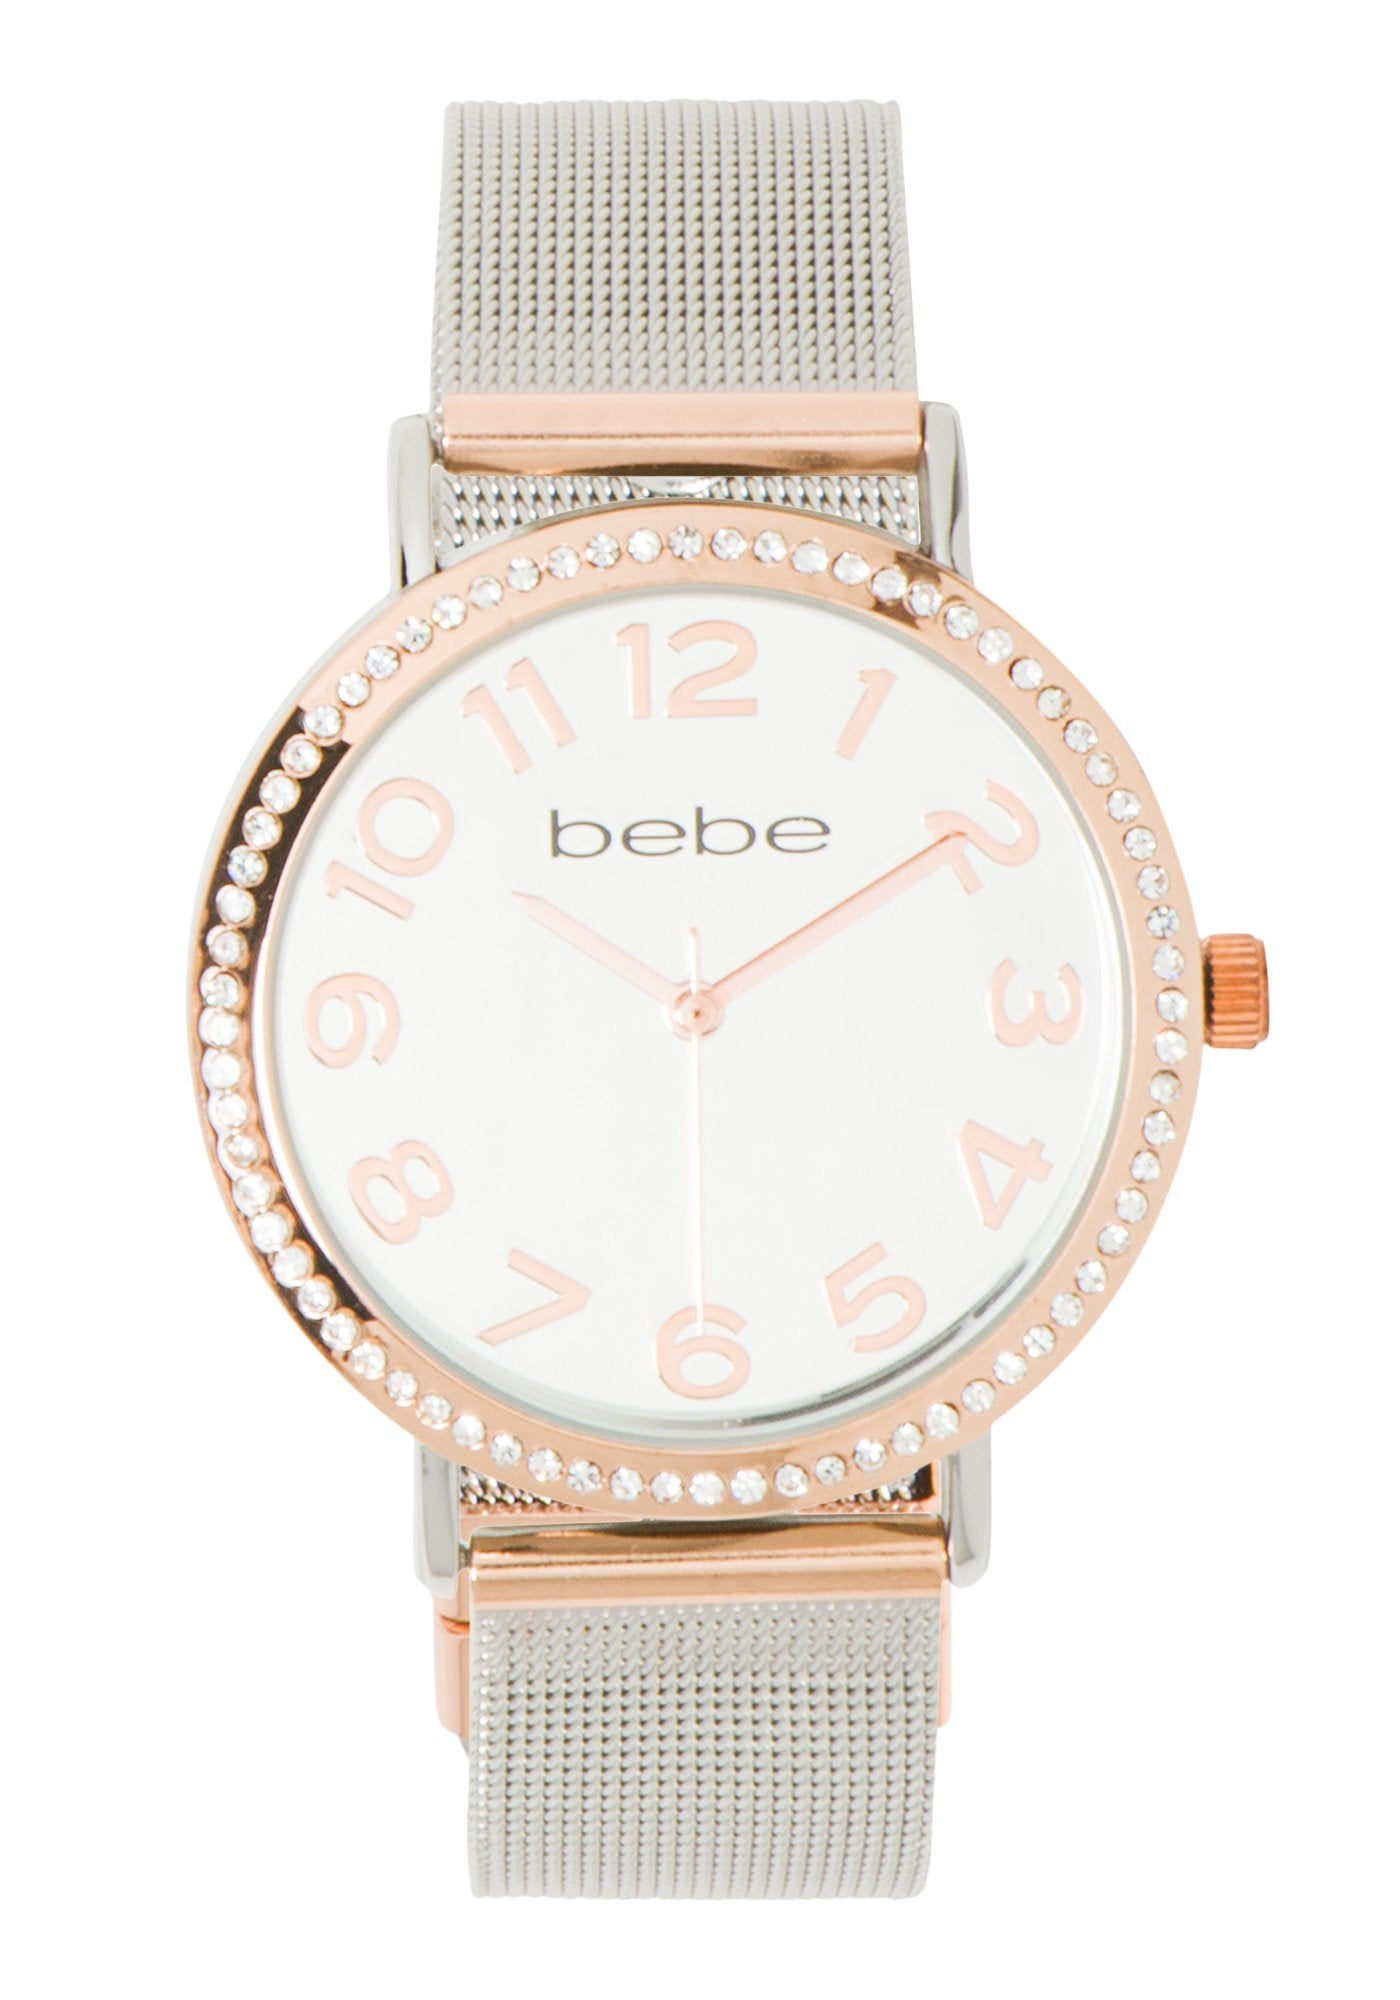 Bebe Women's Mesh Bracelet Crystal Watch in SILVER/ROSE GOLD